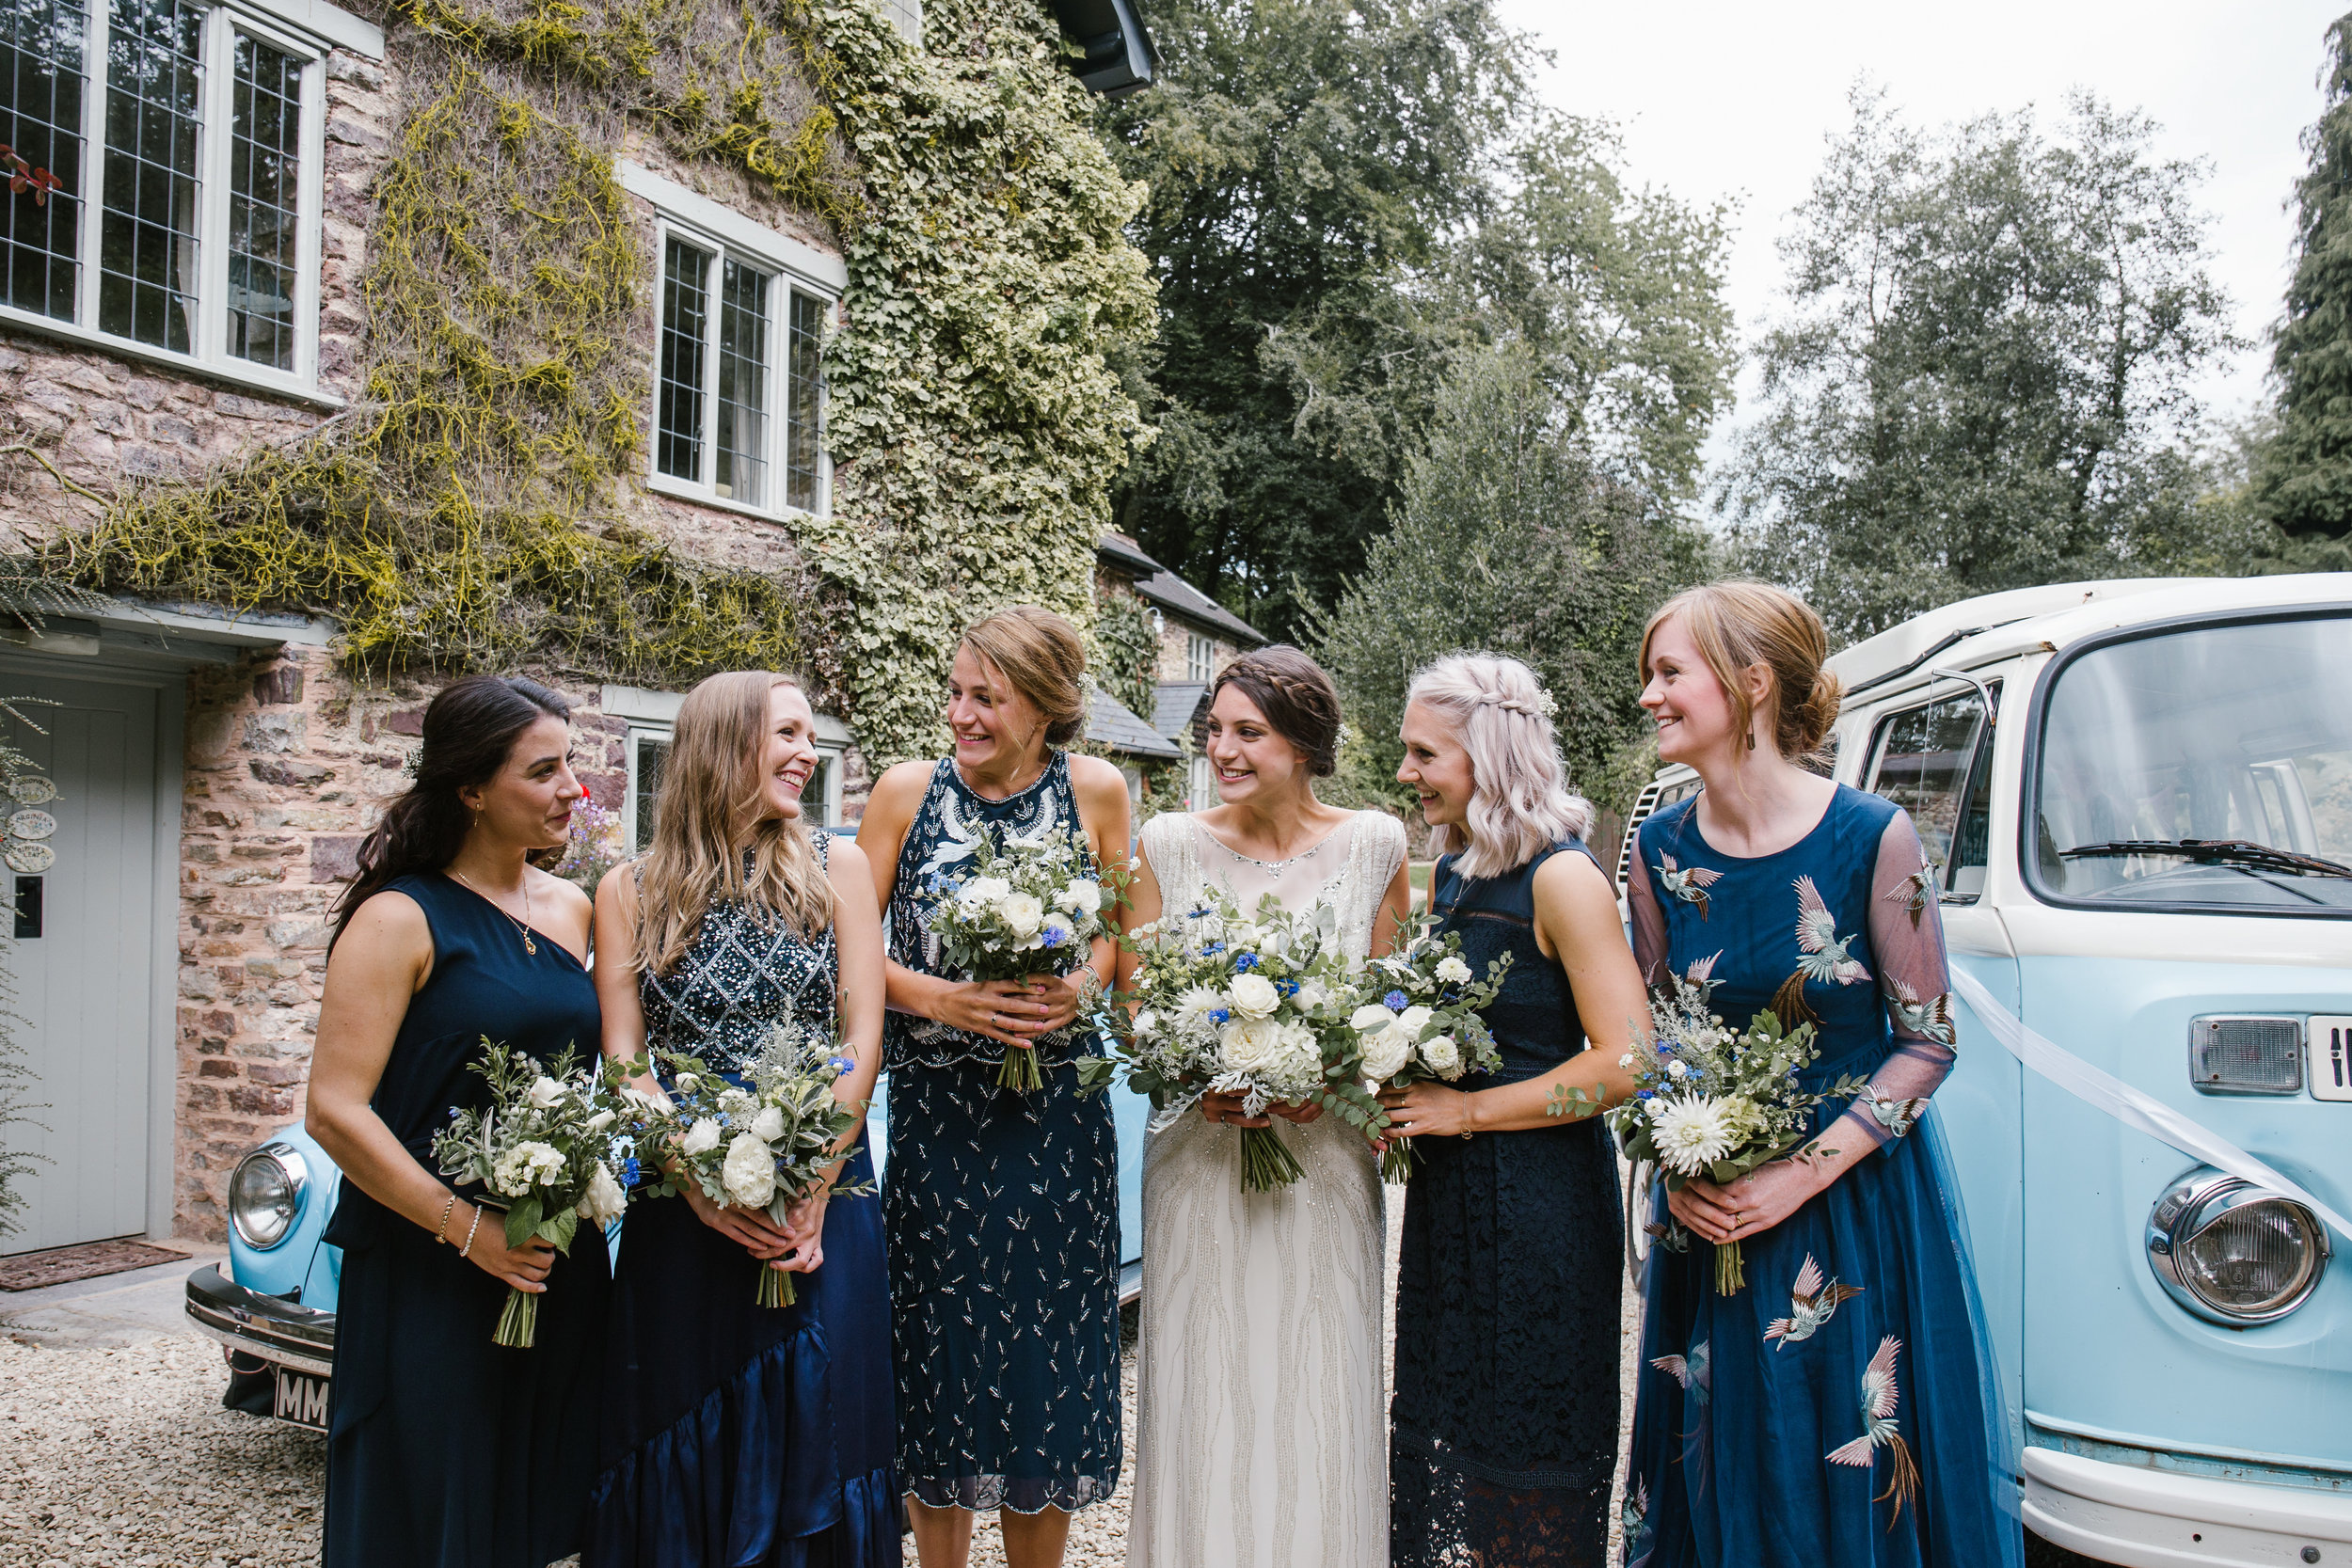 natural photo of bride and bridesmaids laughing together before the outdoor wedding ceremony